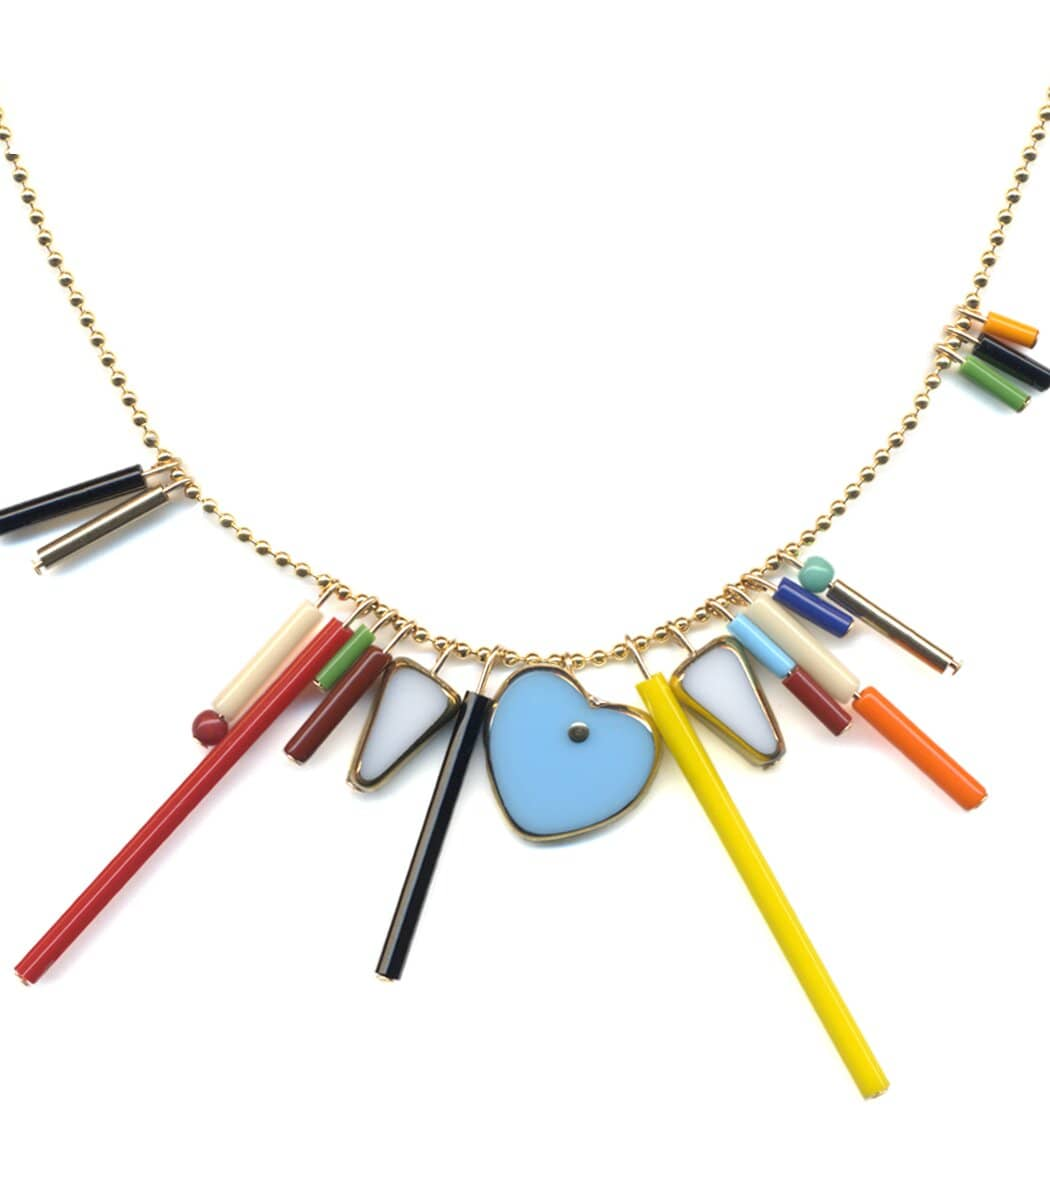 Irk Jewelry I. Ronni Kappos N1904 Heart Fringe Necklace